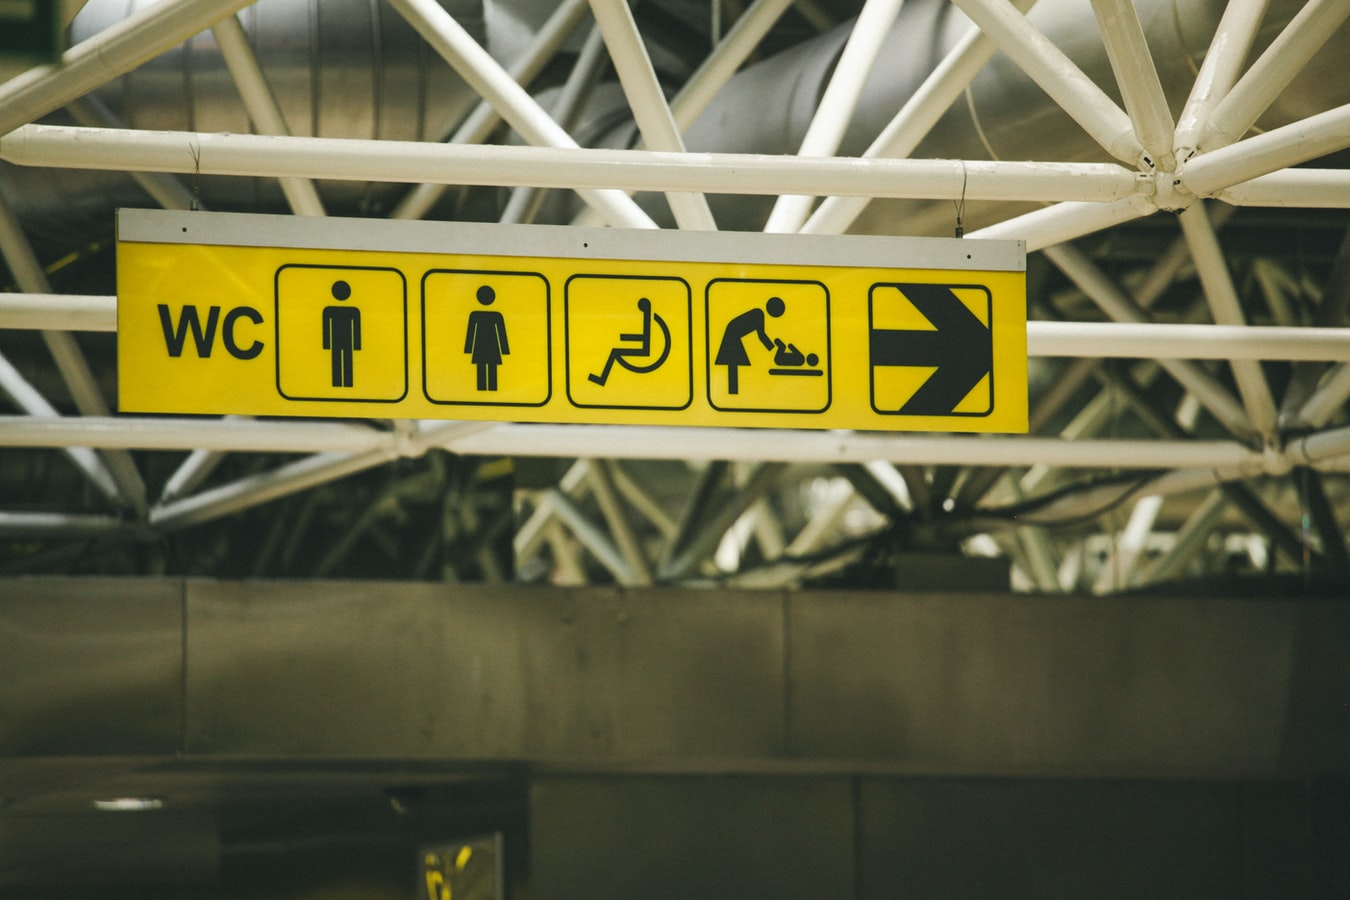 A set of signs in a venue indicating toilets and accessible toilets.